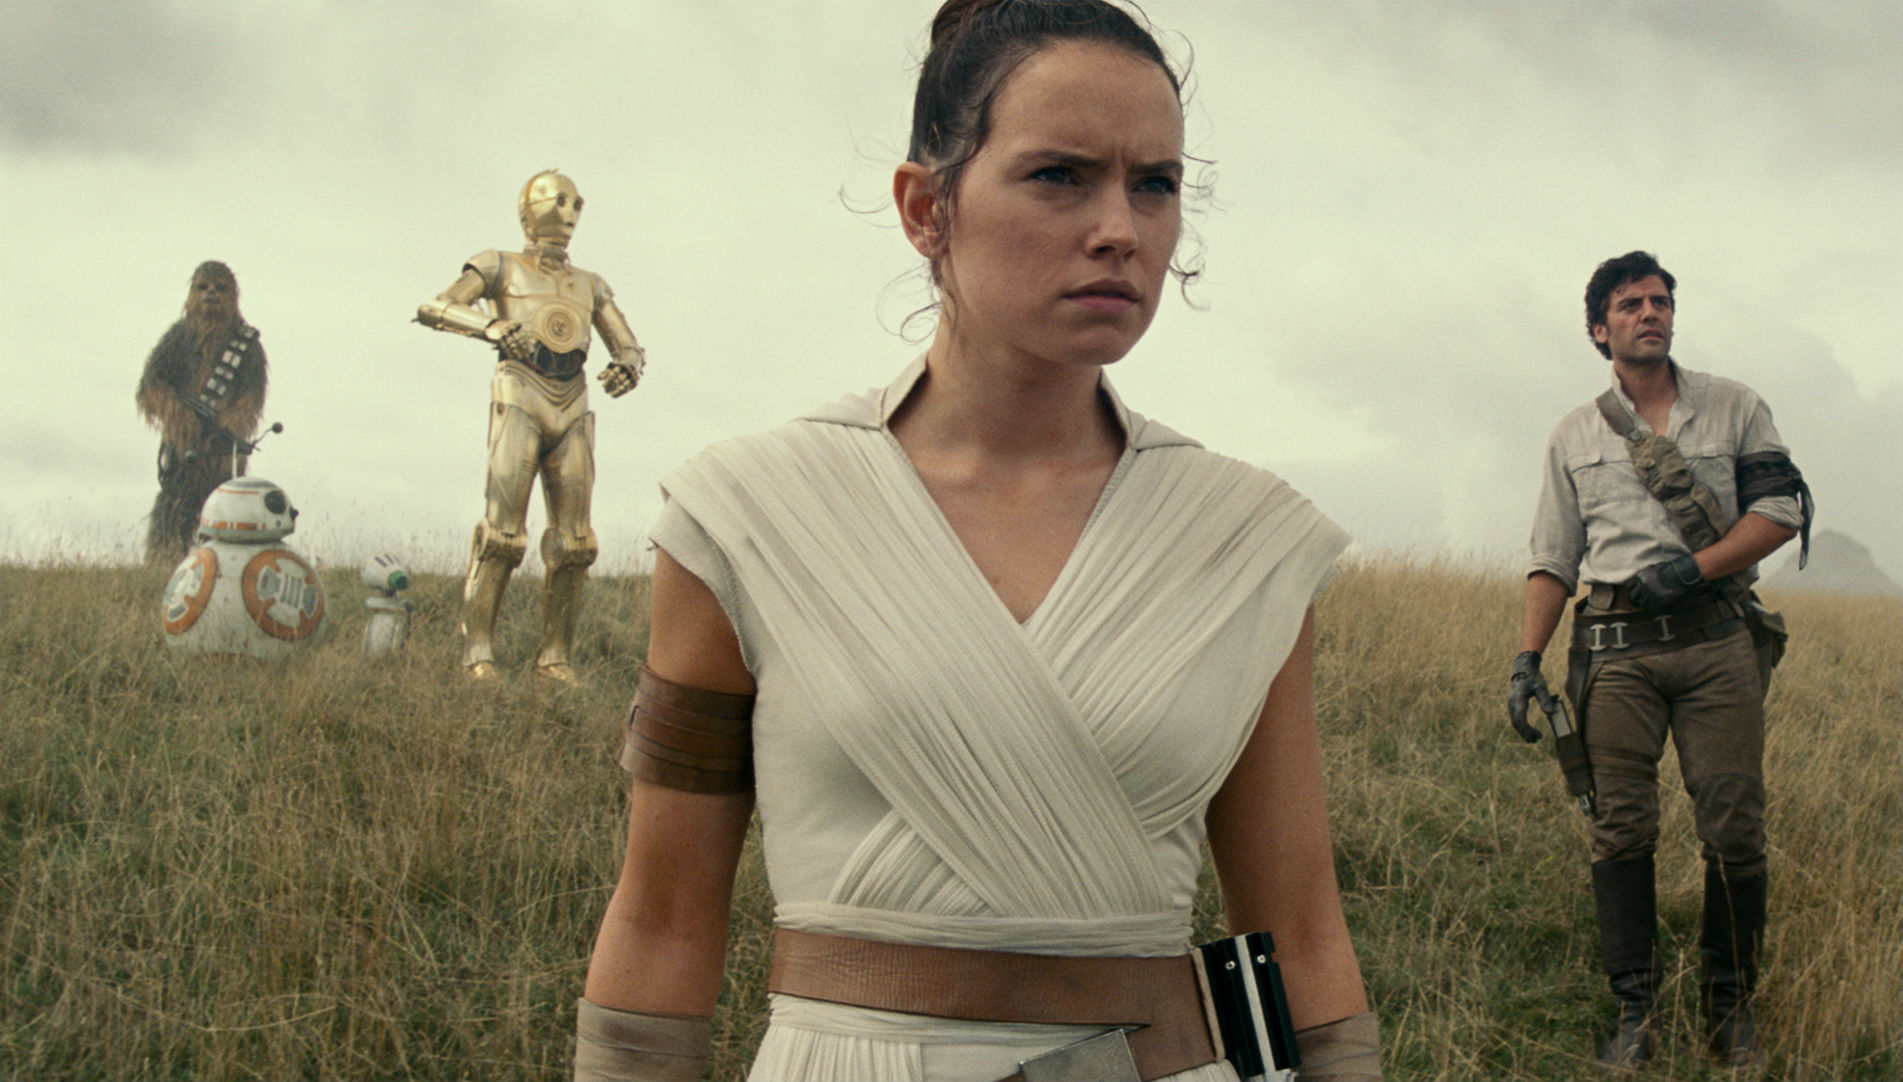 Star Wars: The Rise of Skywalker Trailer: What Does it Mean?